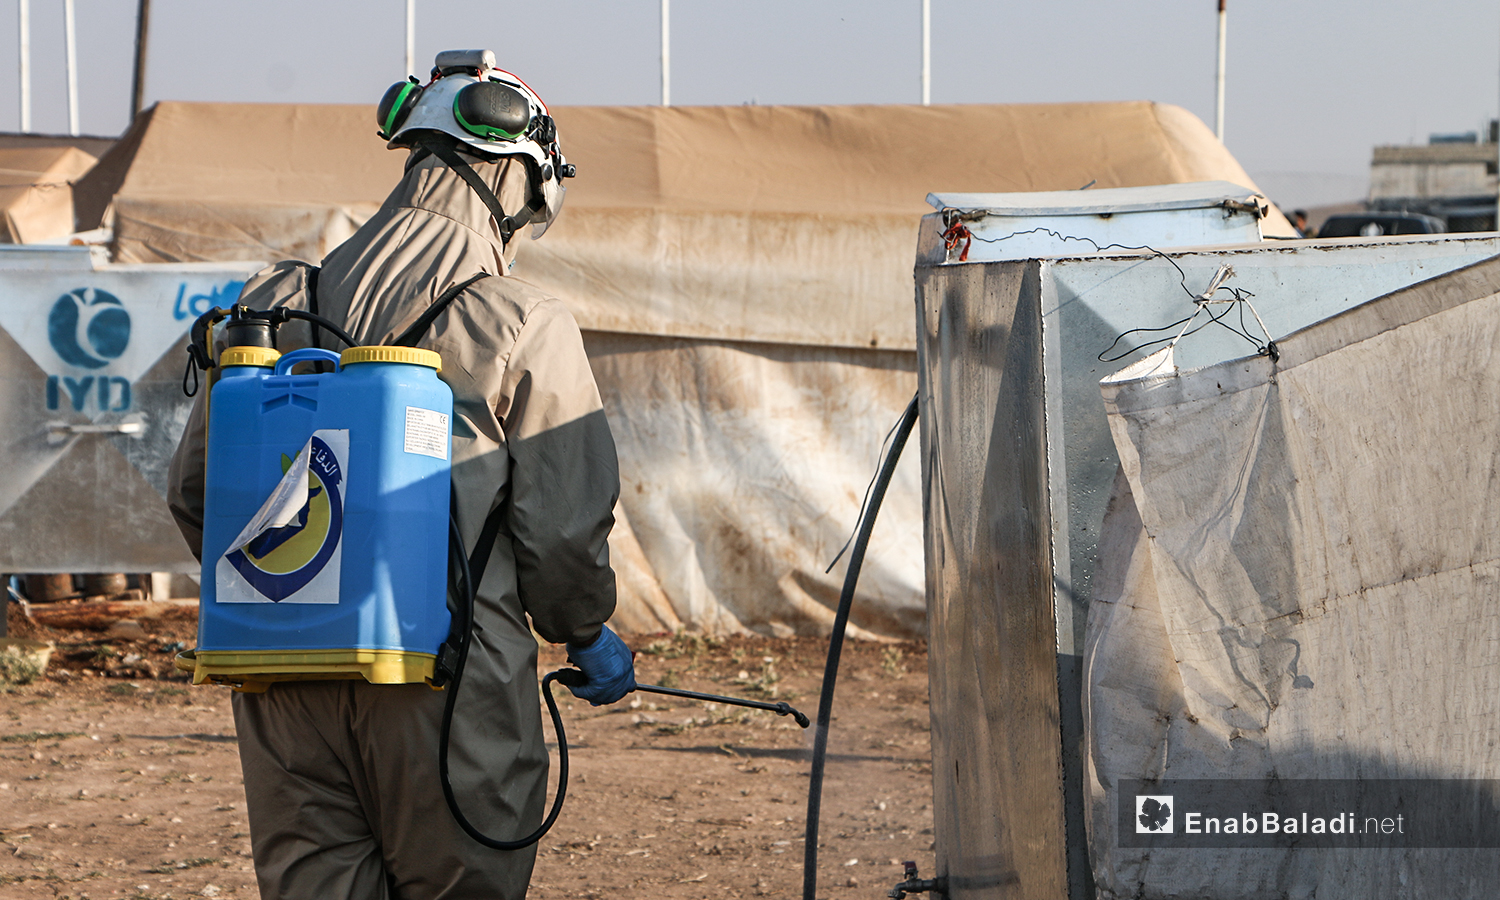 The Syrian Civil Defense team undertakes precautionary measures against the novel coronavirus (COVID-19) pandemic in Dabiq camps for displaced Syrians in northern Aleppo – 12 July 2020 (Enab Baladi / Abdul Salam Majan)